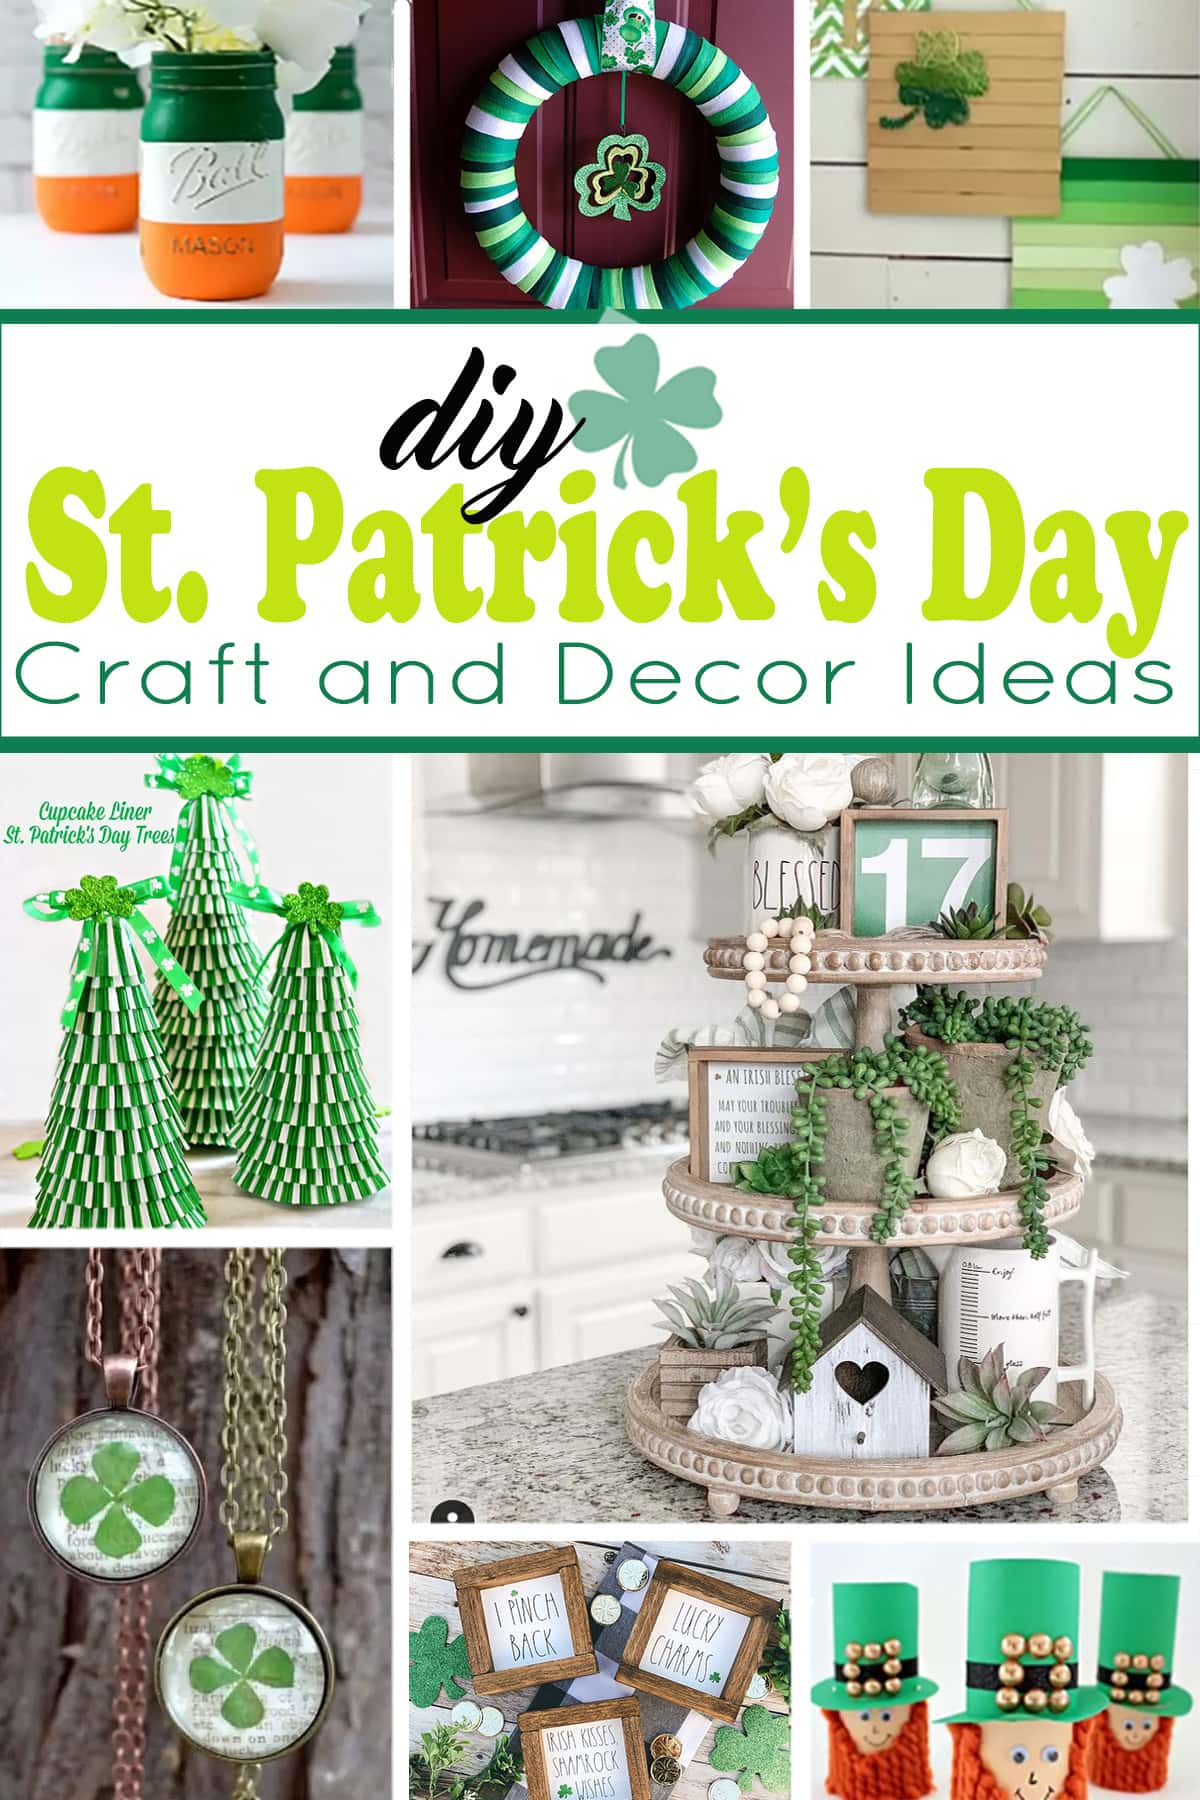 Collage of DIY craft and decor ideas for St. Patrick's Day.